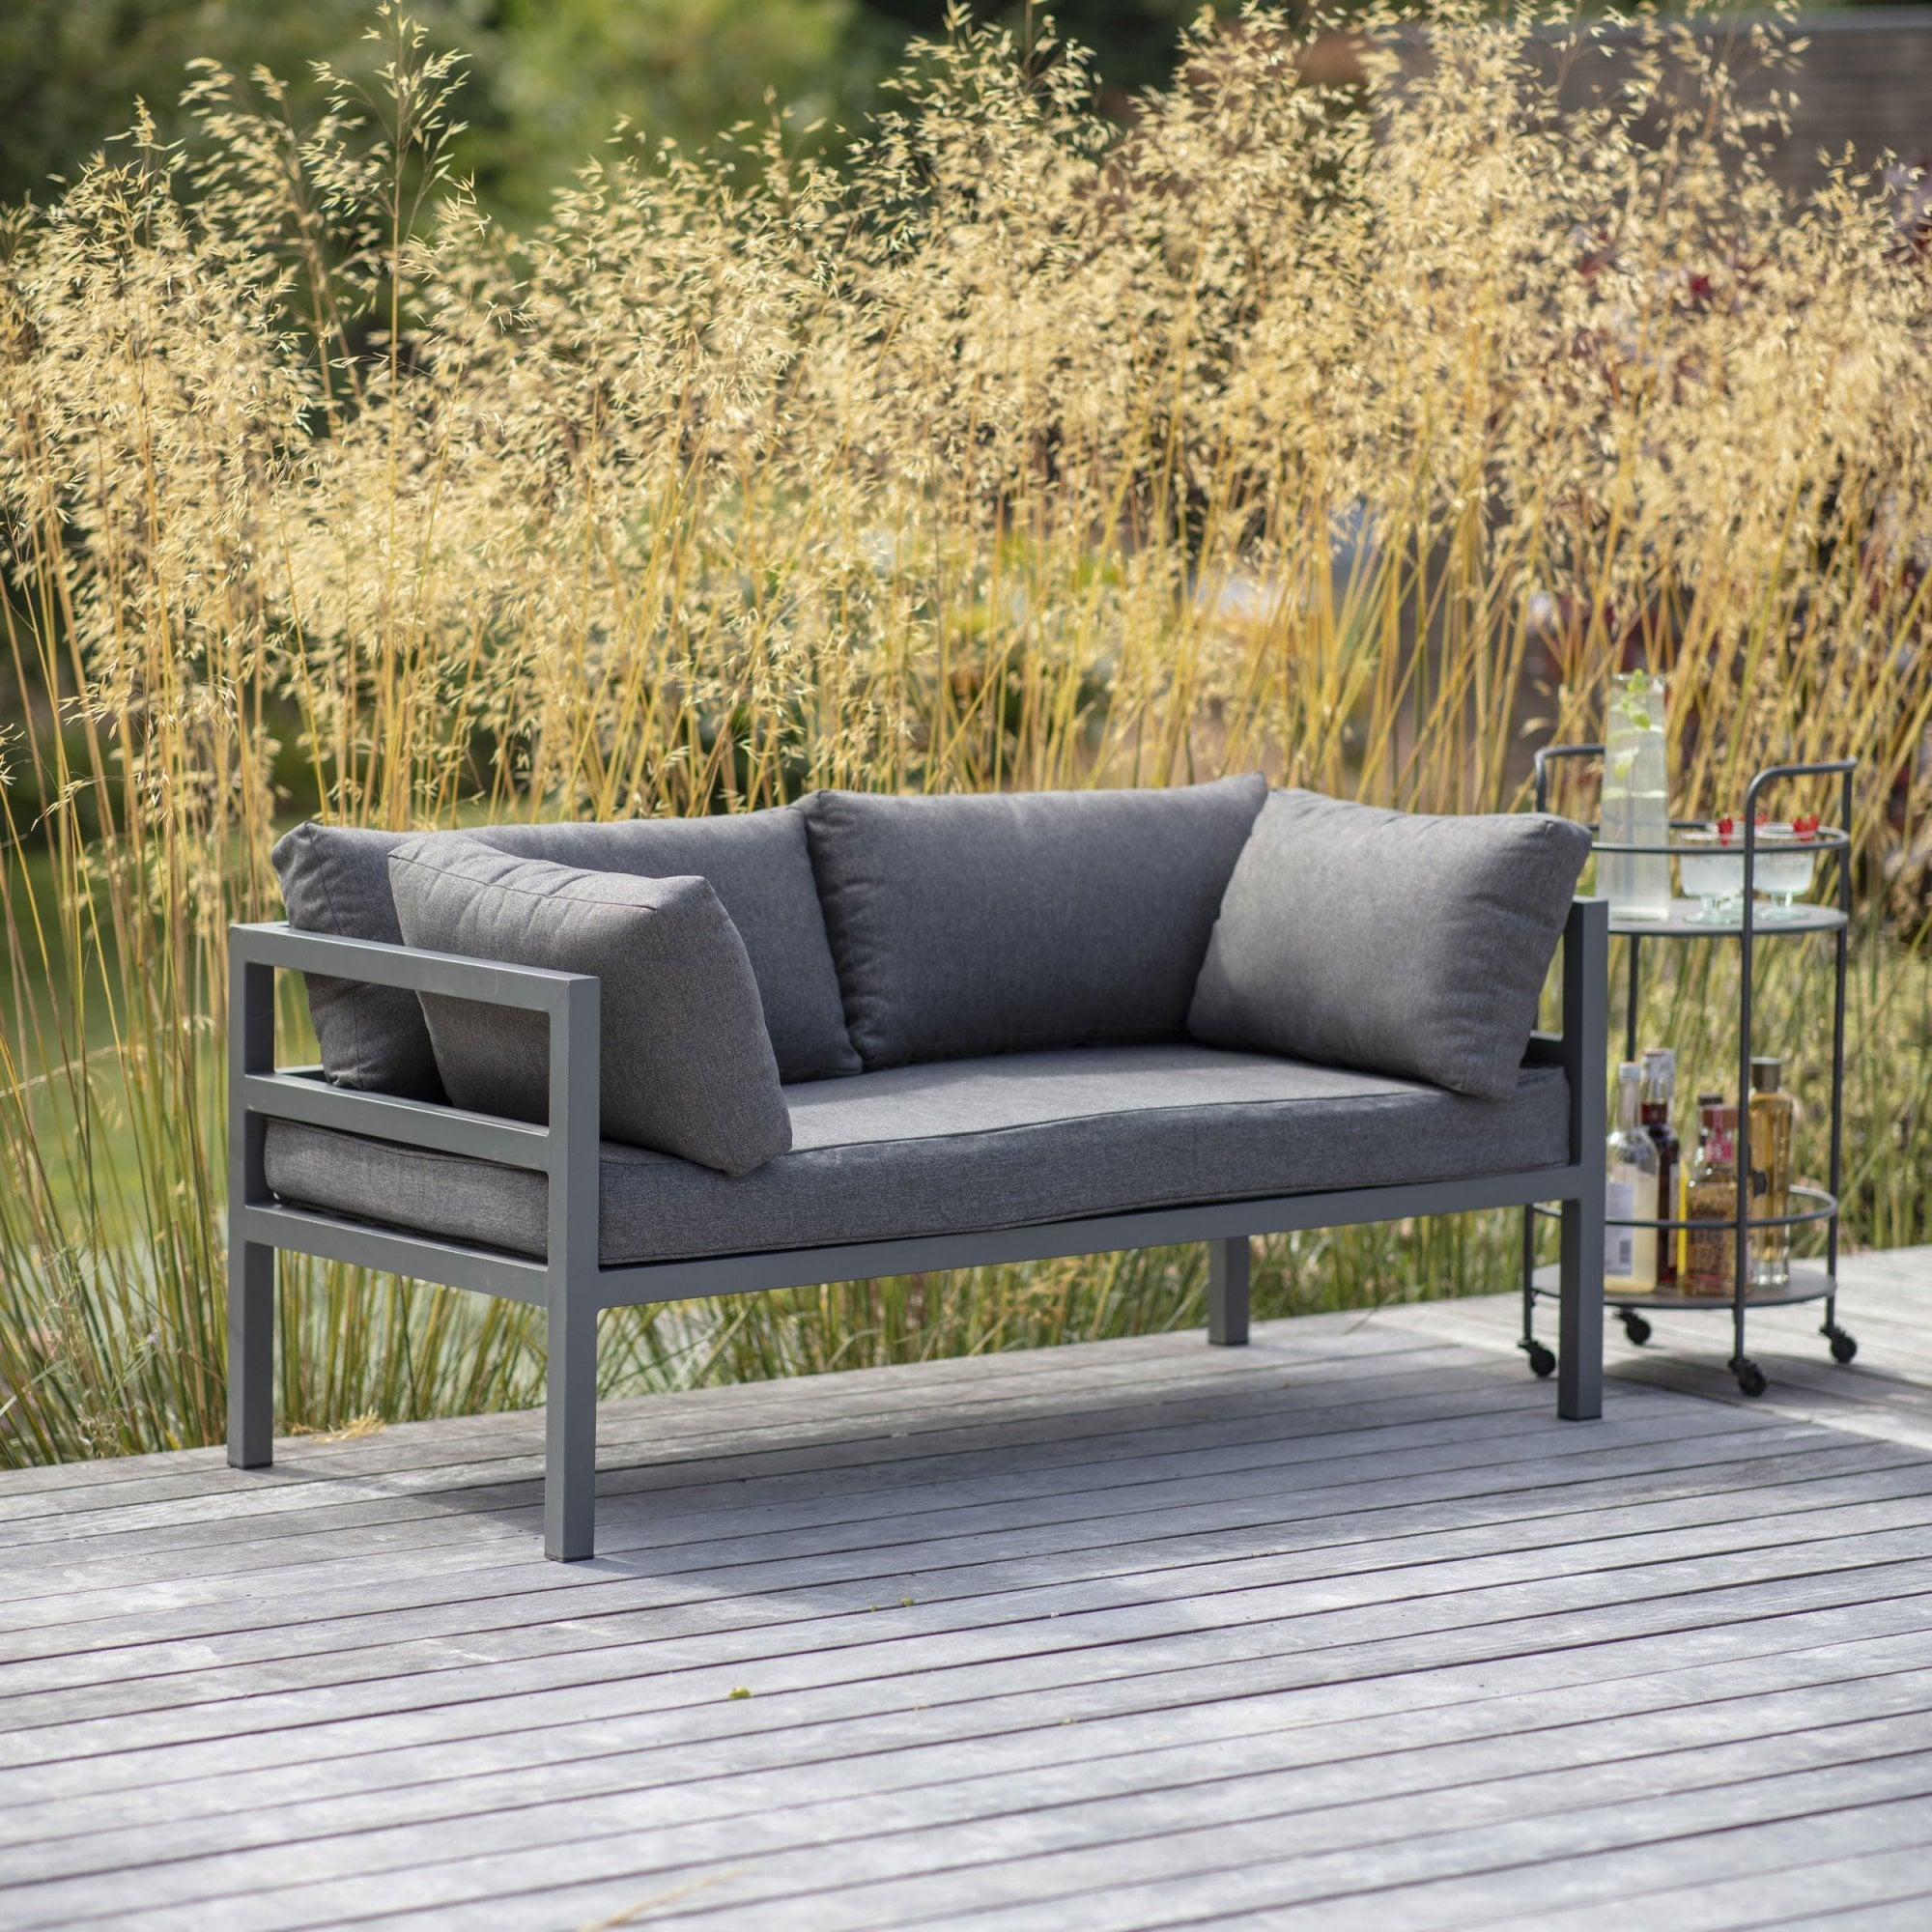 Sofa Back Wall Design, Garden Trading West Strand 2 Seater Sofa Aluminium Black By Design